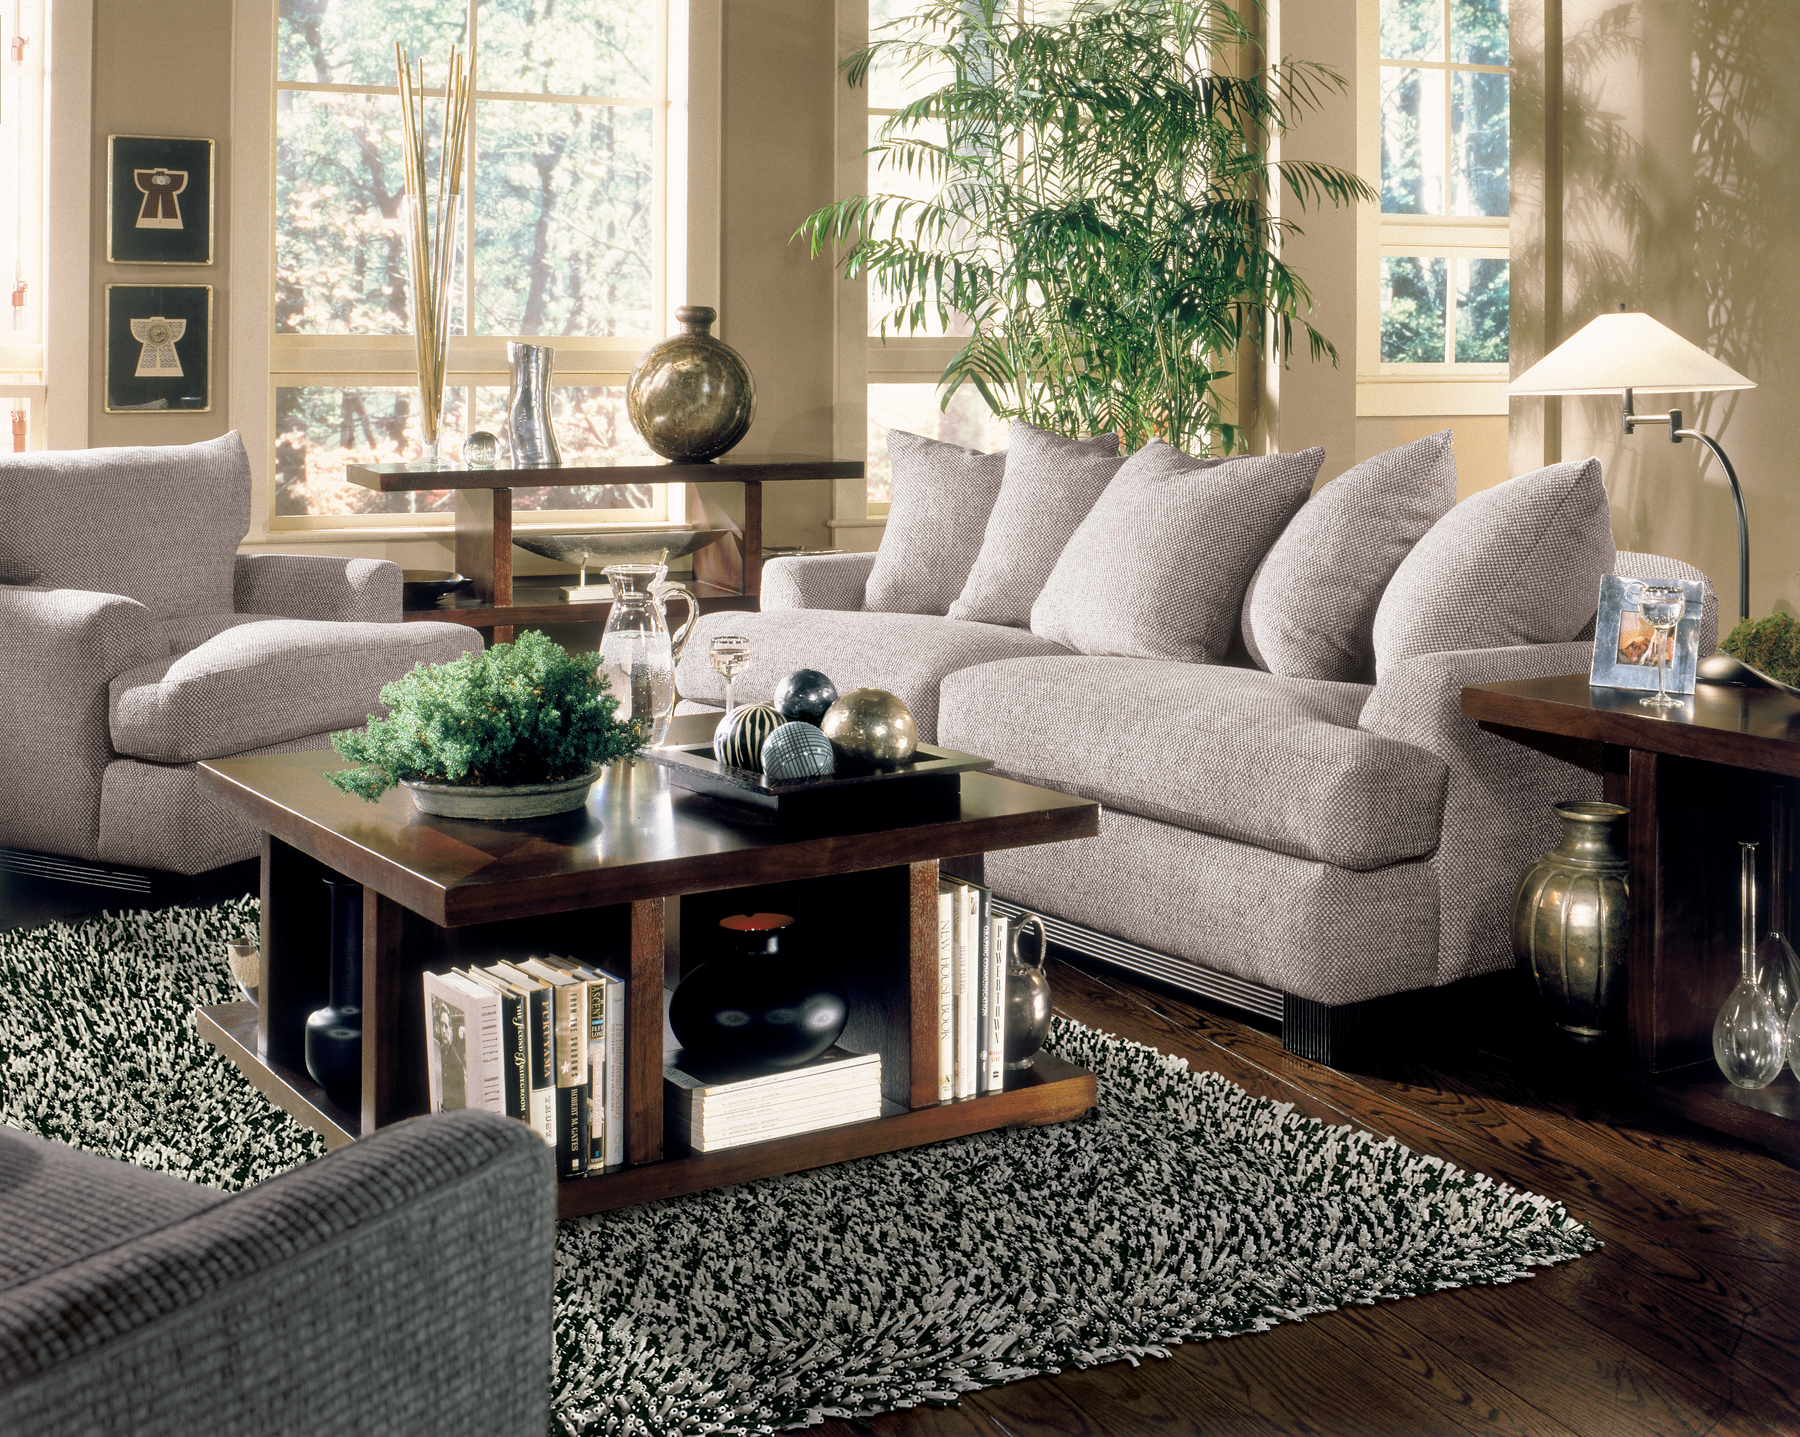 Bombay Living Room Unique Carpets Ltd